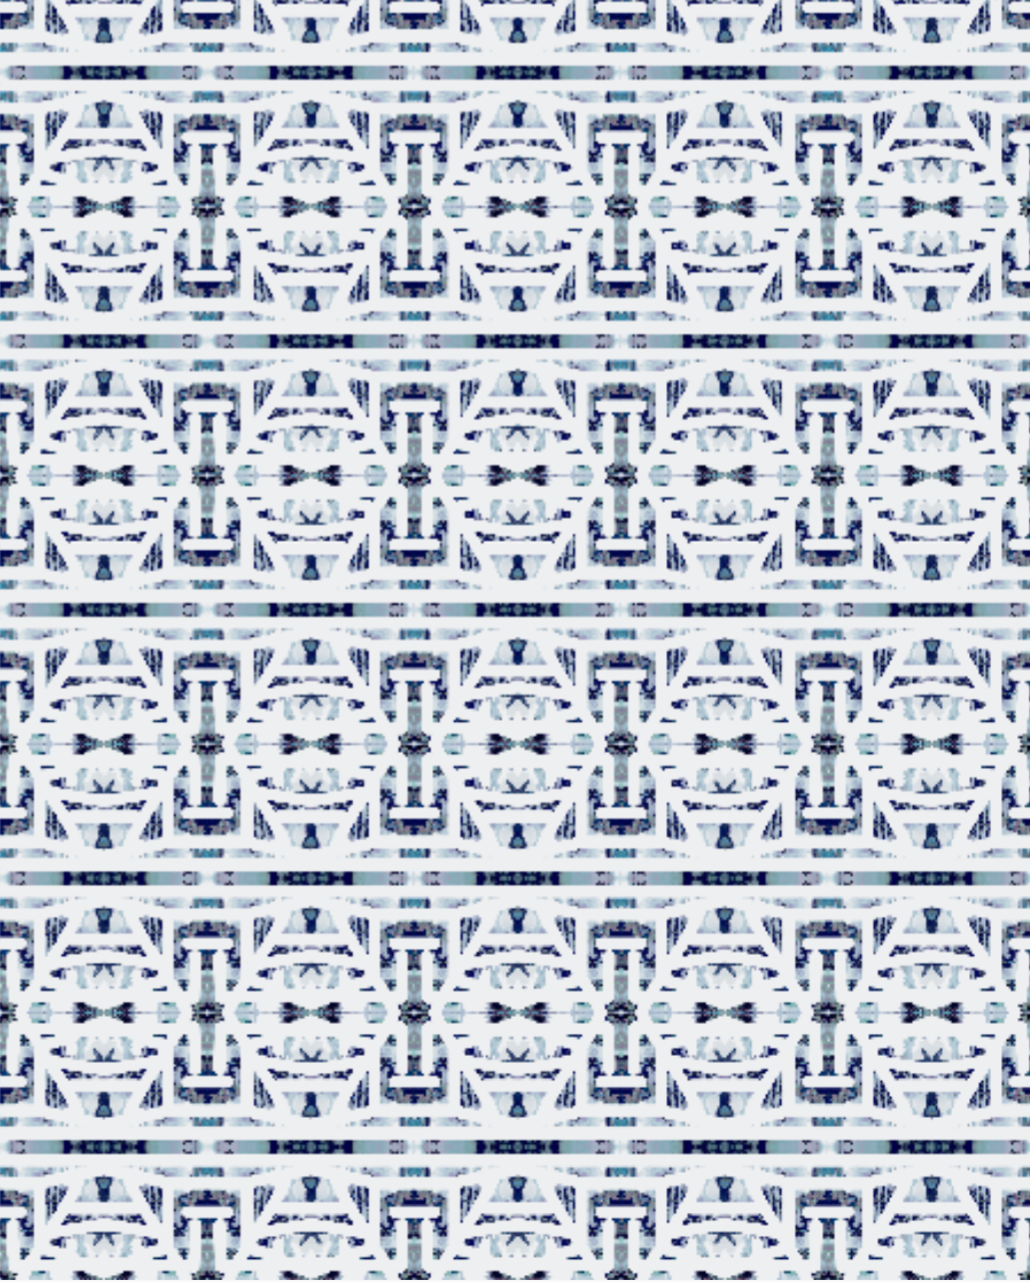 navy blue diamond fabric, navy blue tribal fabric, tribal design fabric, navy and light blue fabric tirbal, nashville fabric store, philadelphia fabric showroom